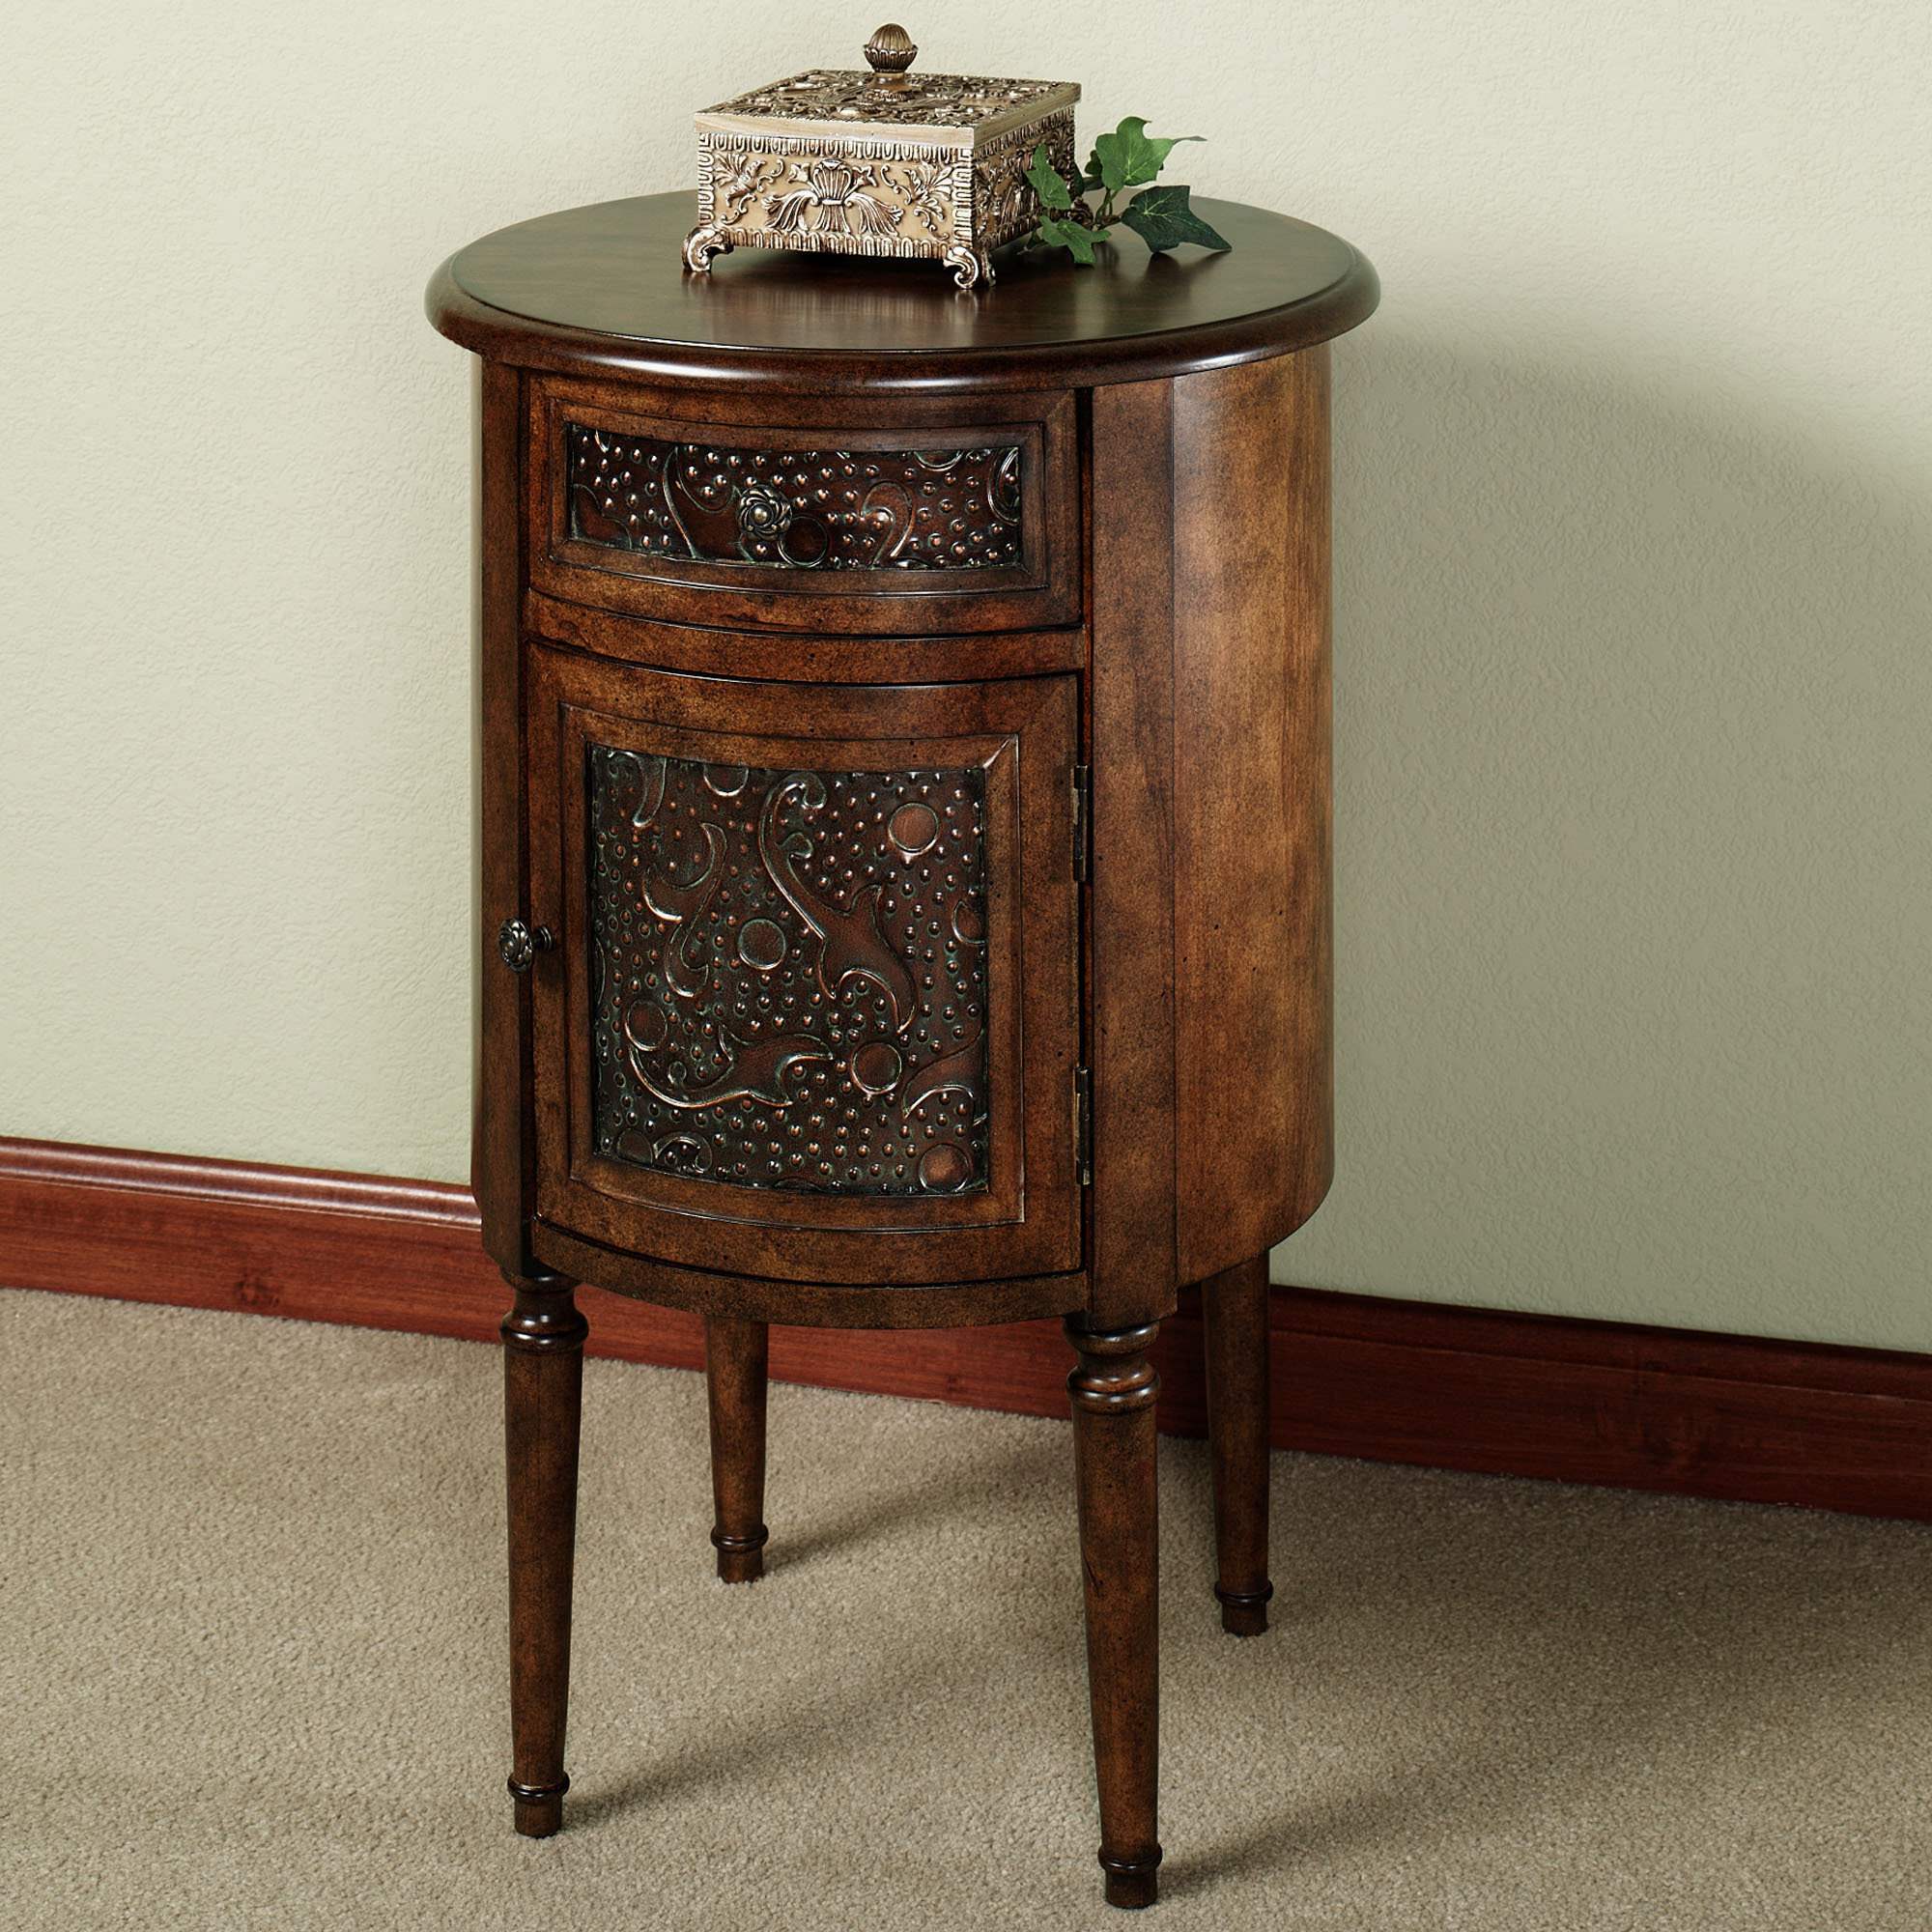 the outrageous beautiful end table with curved legs mira road design wood accent home and incredible industrial style tables pedestal papa bear chair low black coffee cherry